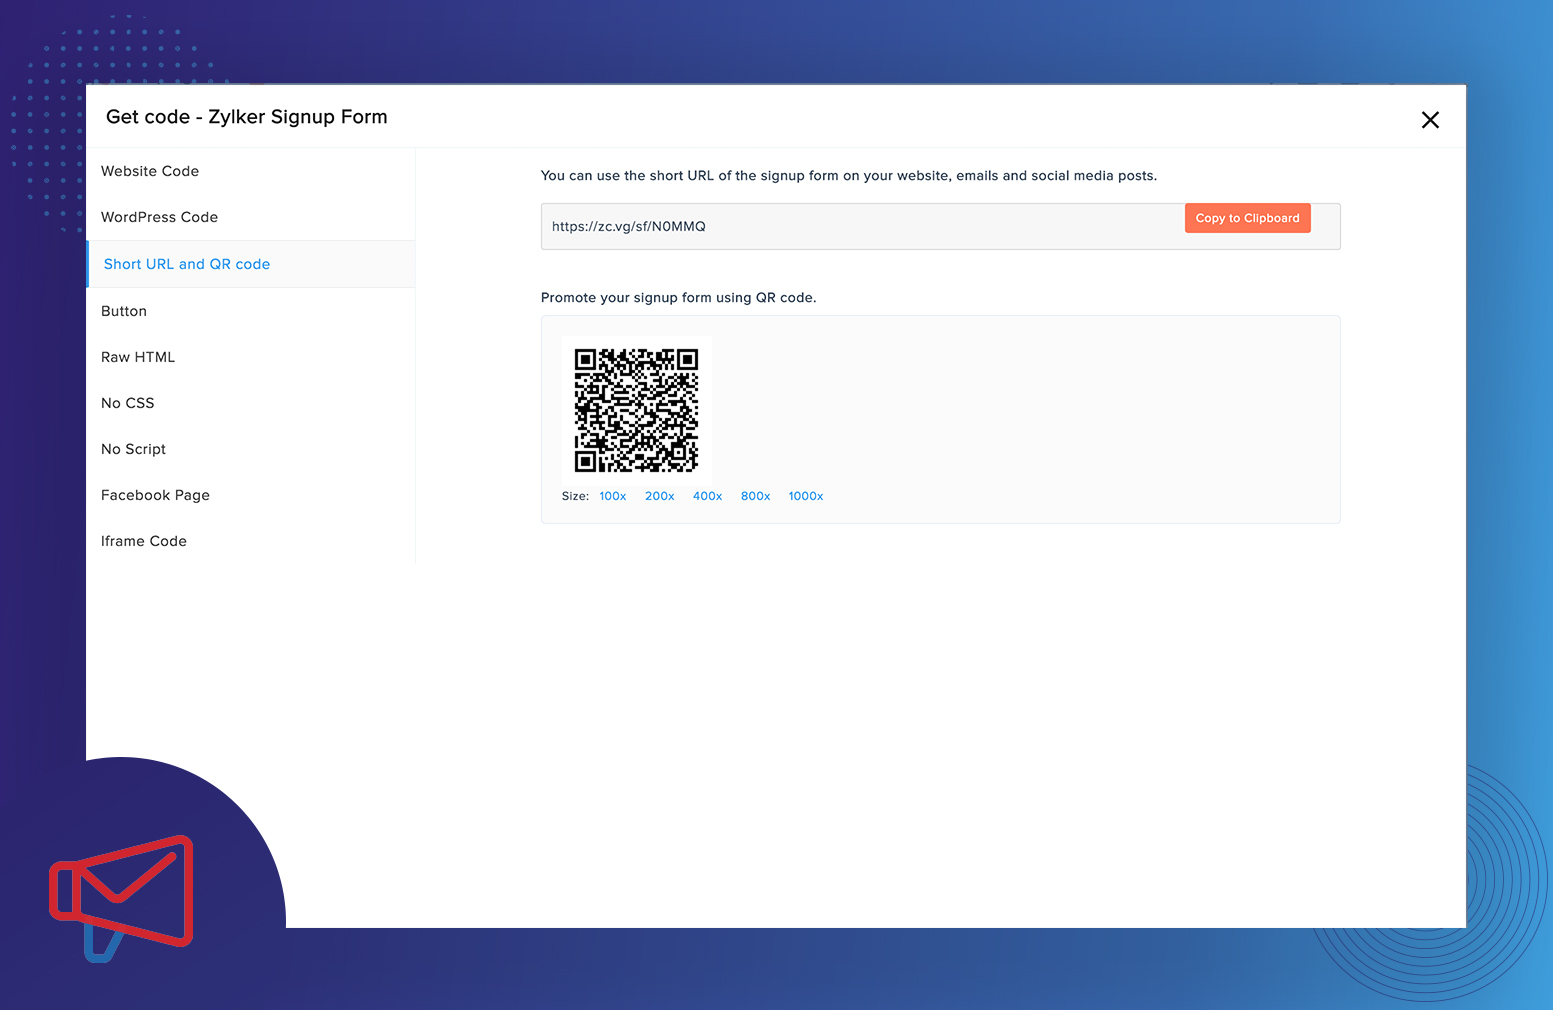 Generating QR Code for a sign-up form